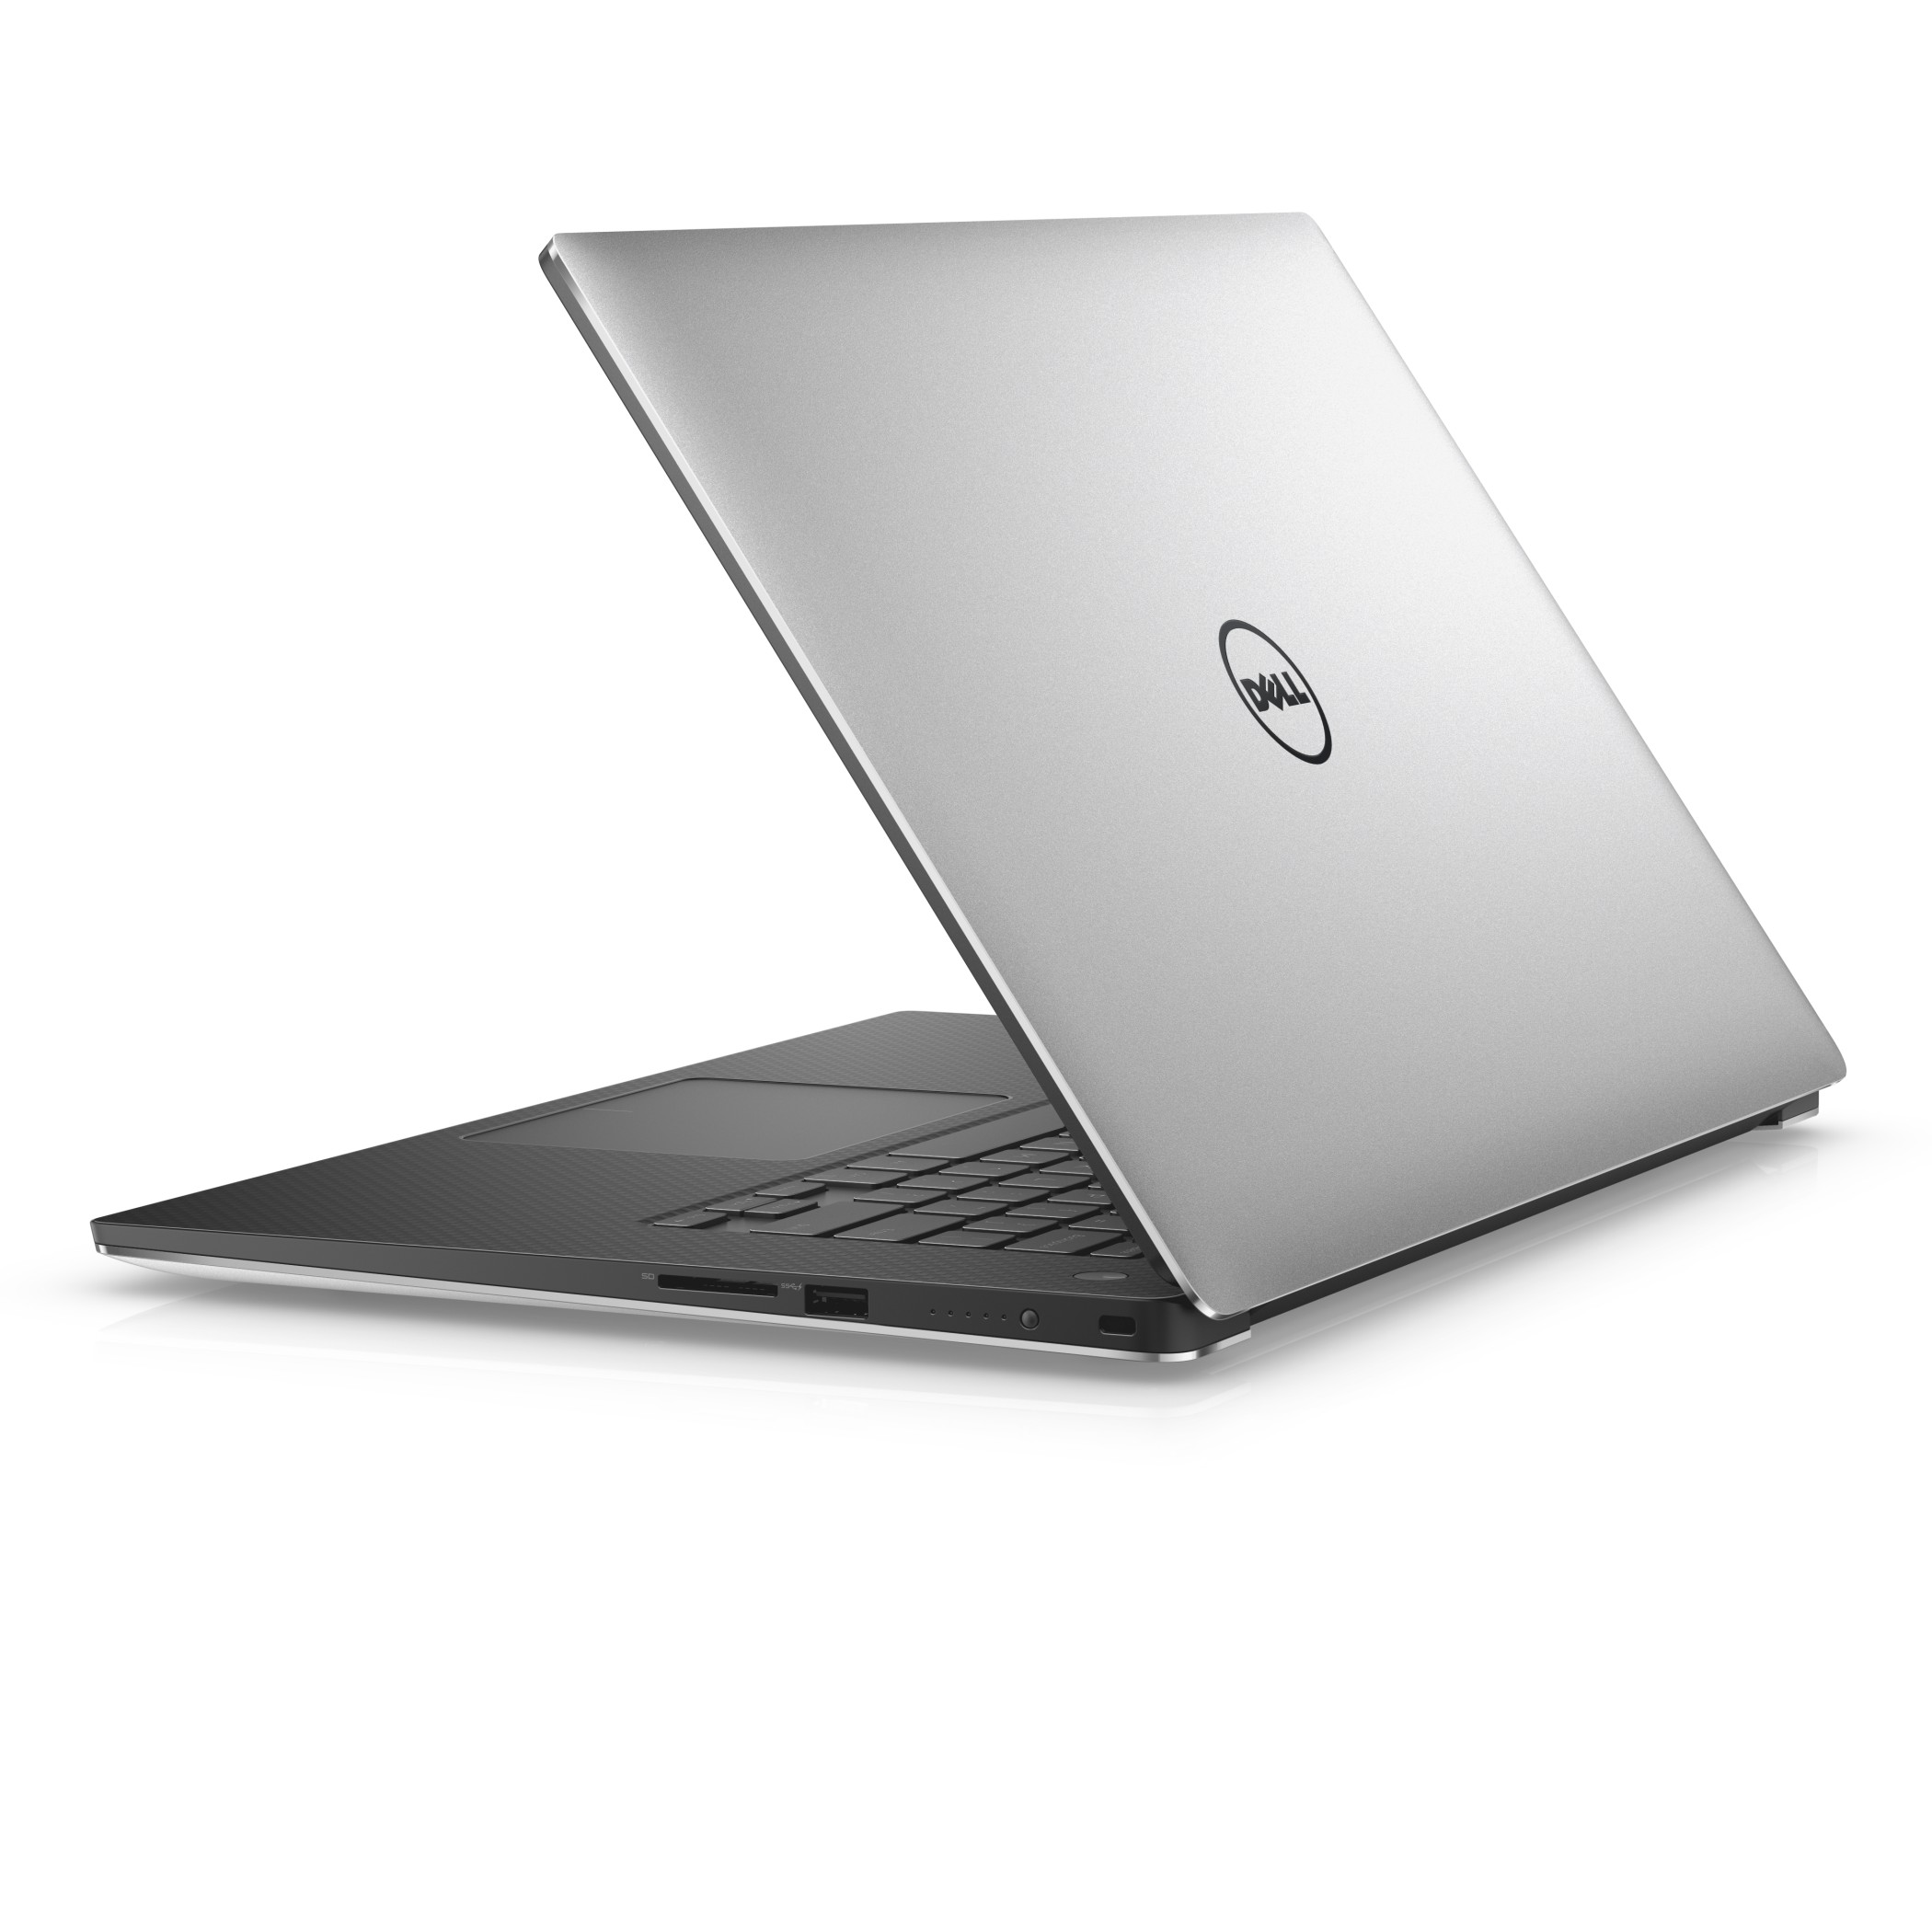 "Dell XPS 15 9550 15"" FHD i5-6300HQ/8GB/1TB+32GB/GTX960M/HDMI/WIFI/BT/M"